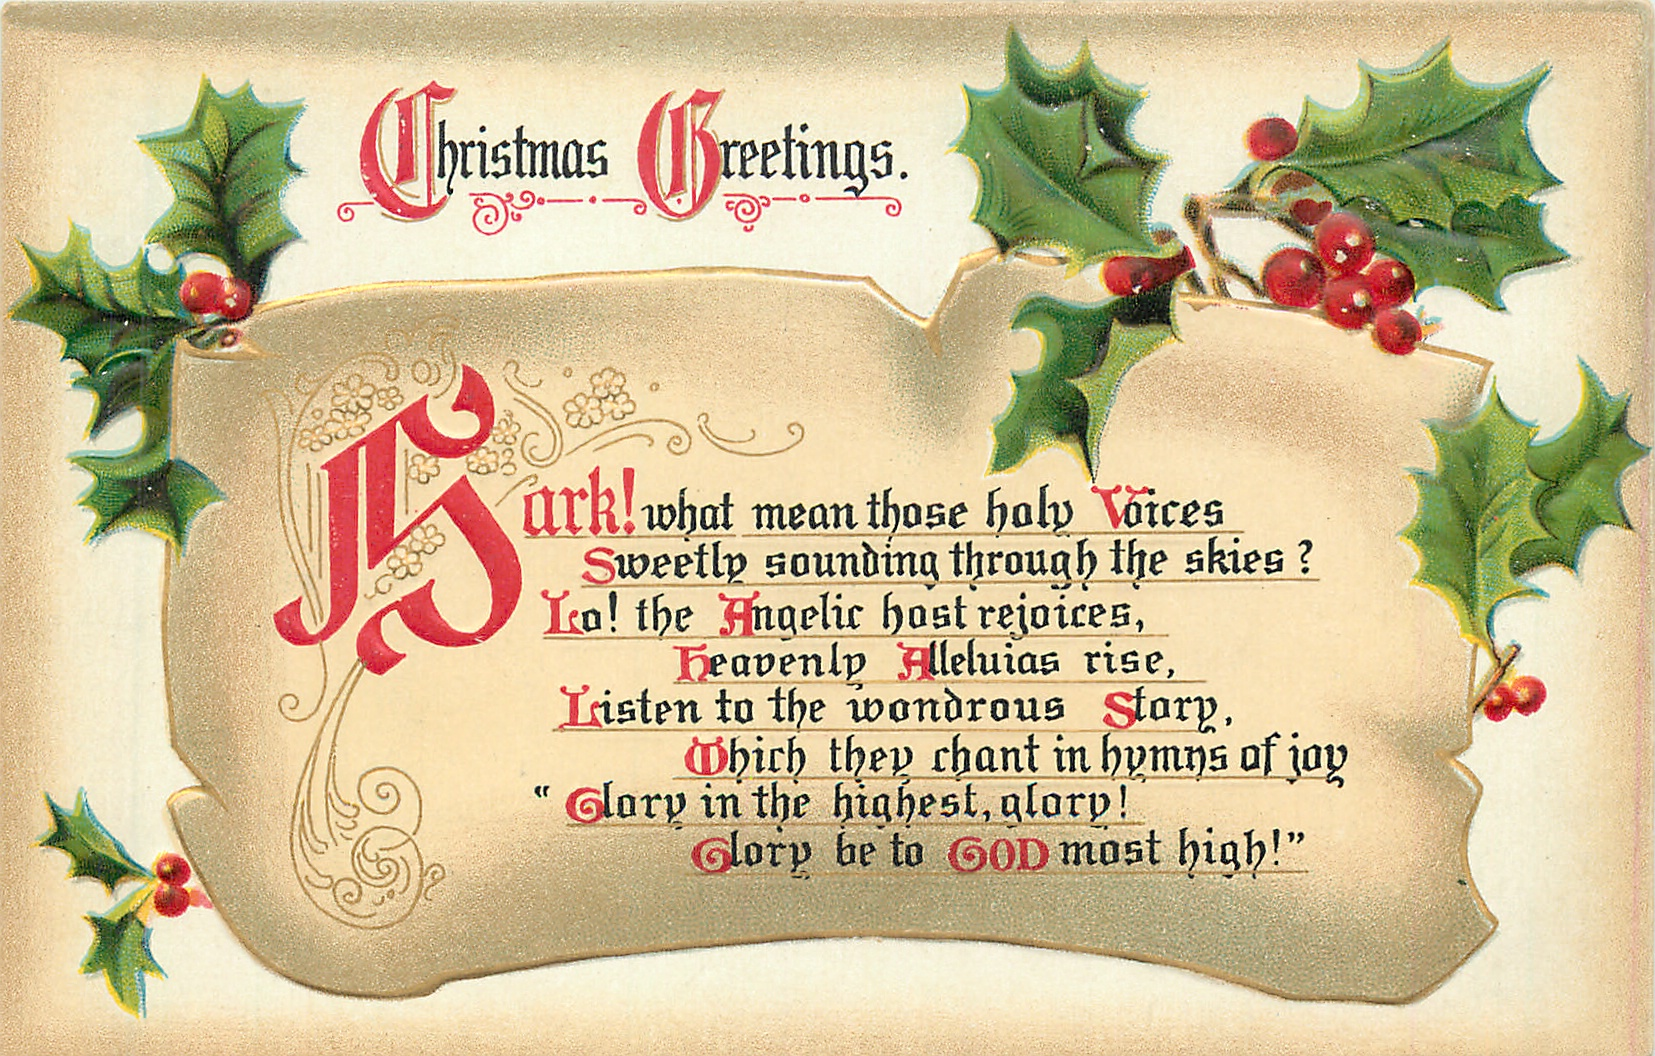 Christmas Greetings Hark What Mean Those Holy Voices Sweetly